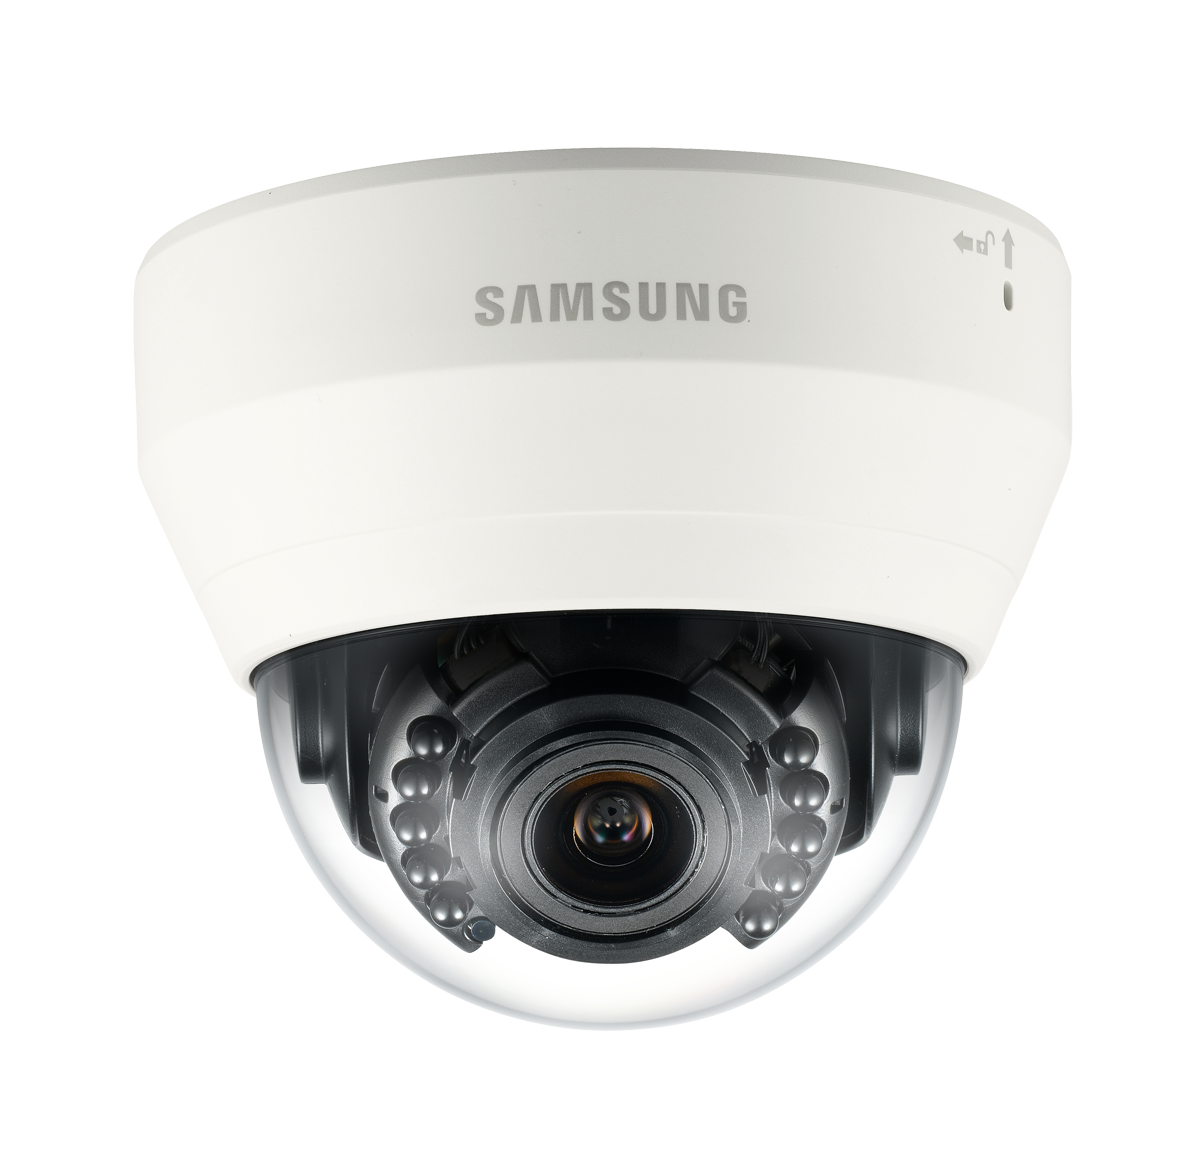 samsung techwin launches wisenet lite security camera. Black Bedroom Furniture Sets. Home Design Ideas